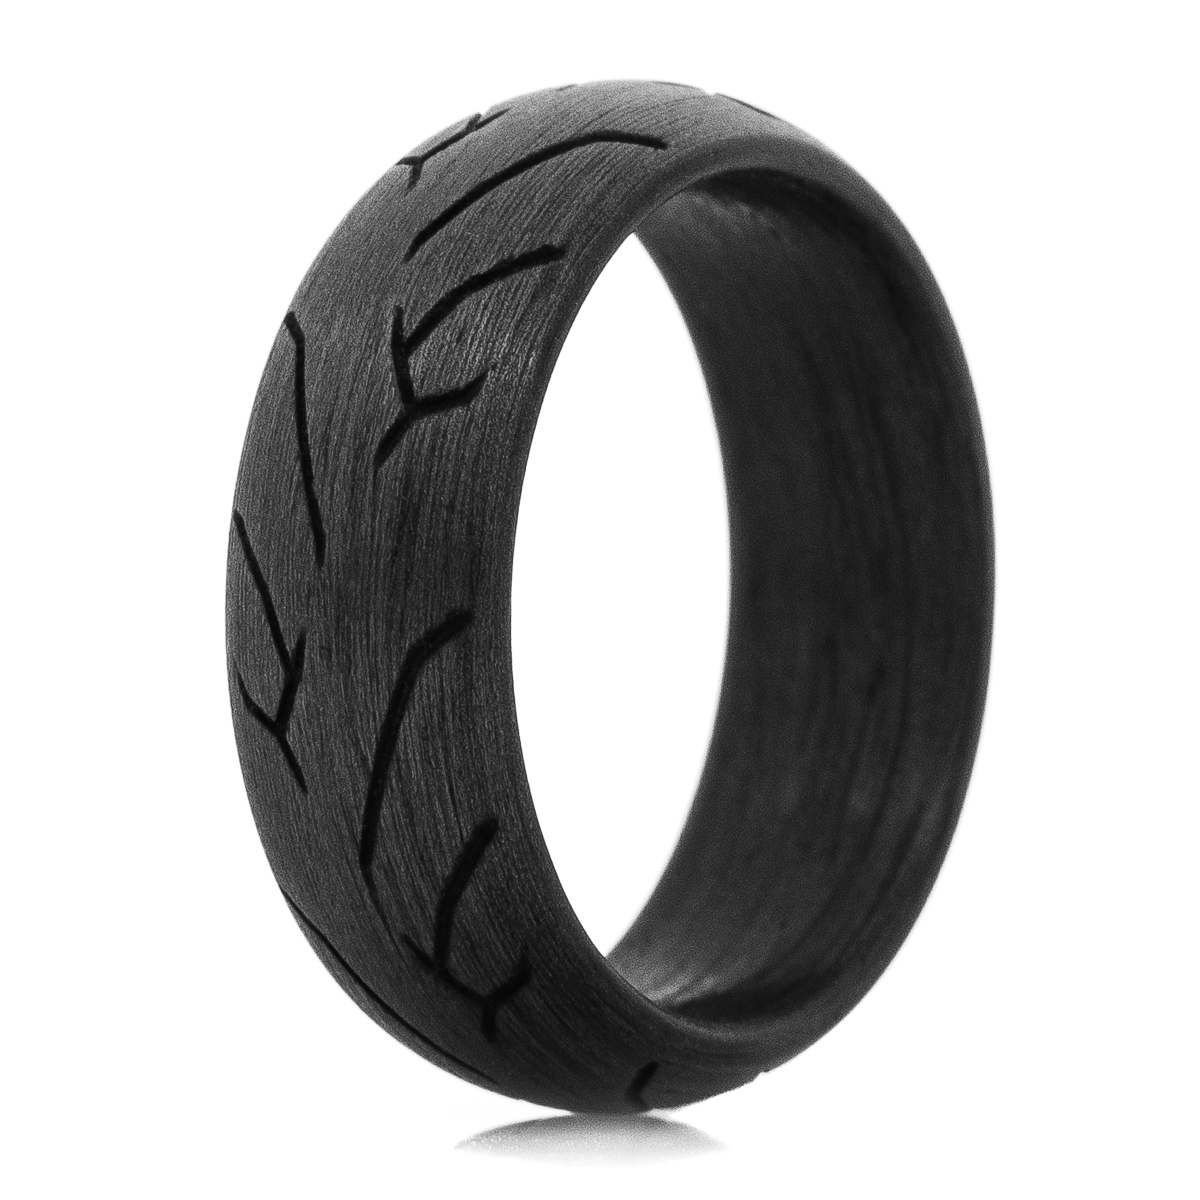 Men's Carbon Fiber Knee Dragger 2 Ring